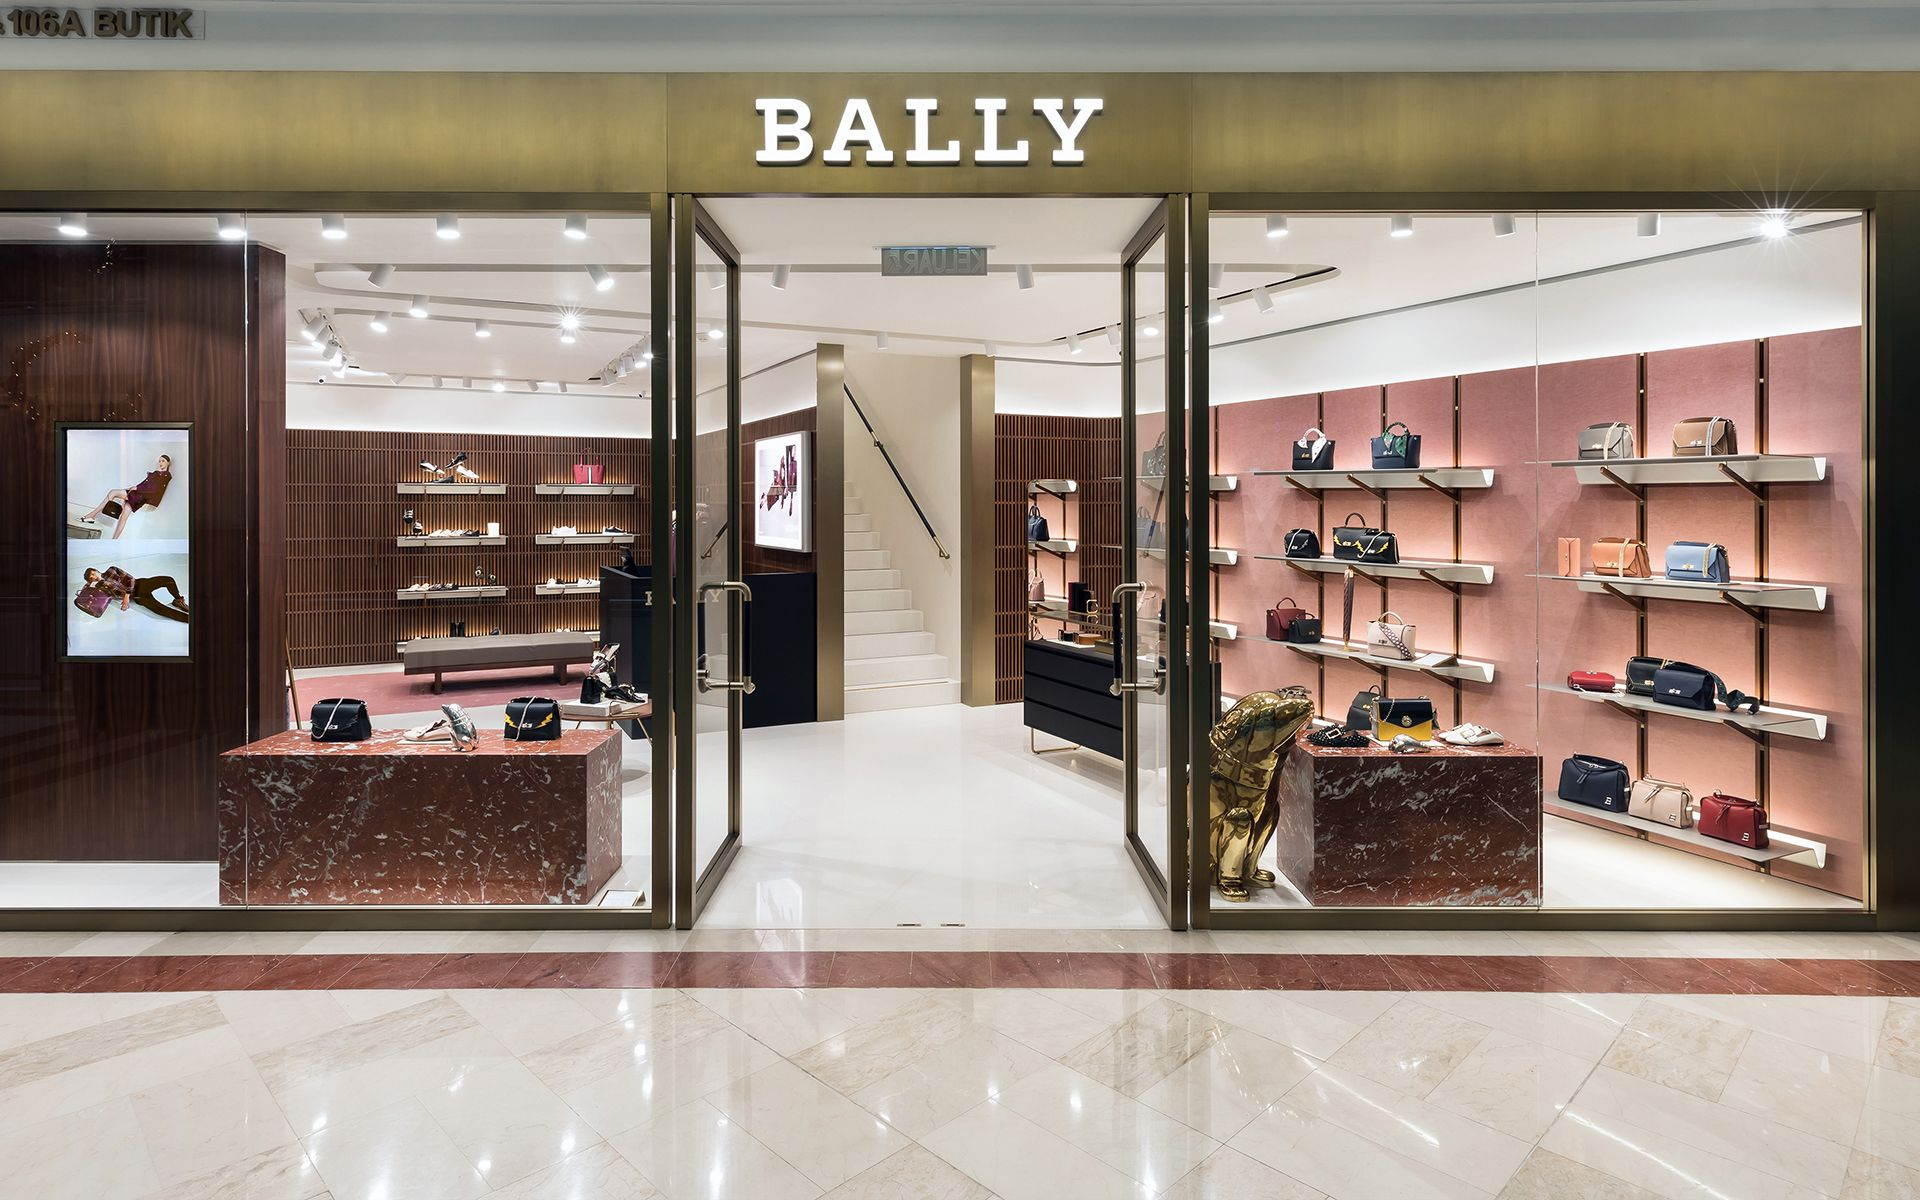 The Bally Suria KLCC flagship store covers 2 levels, each dedicated to men's and women's collections